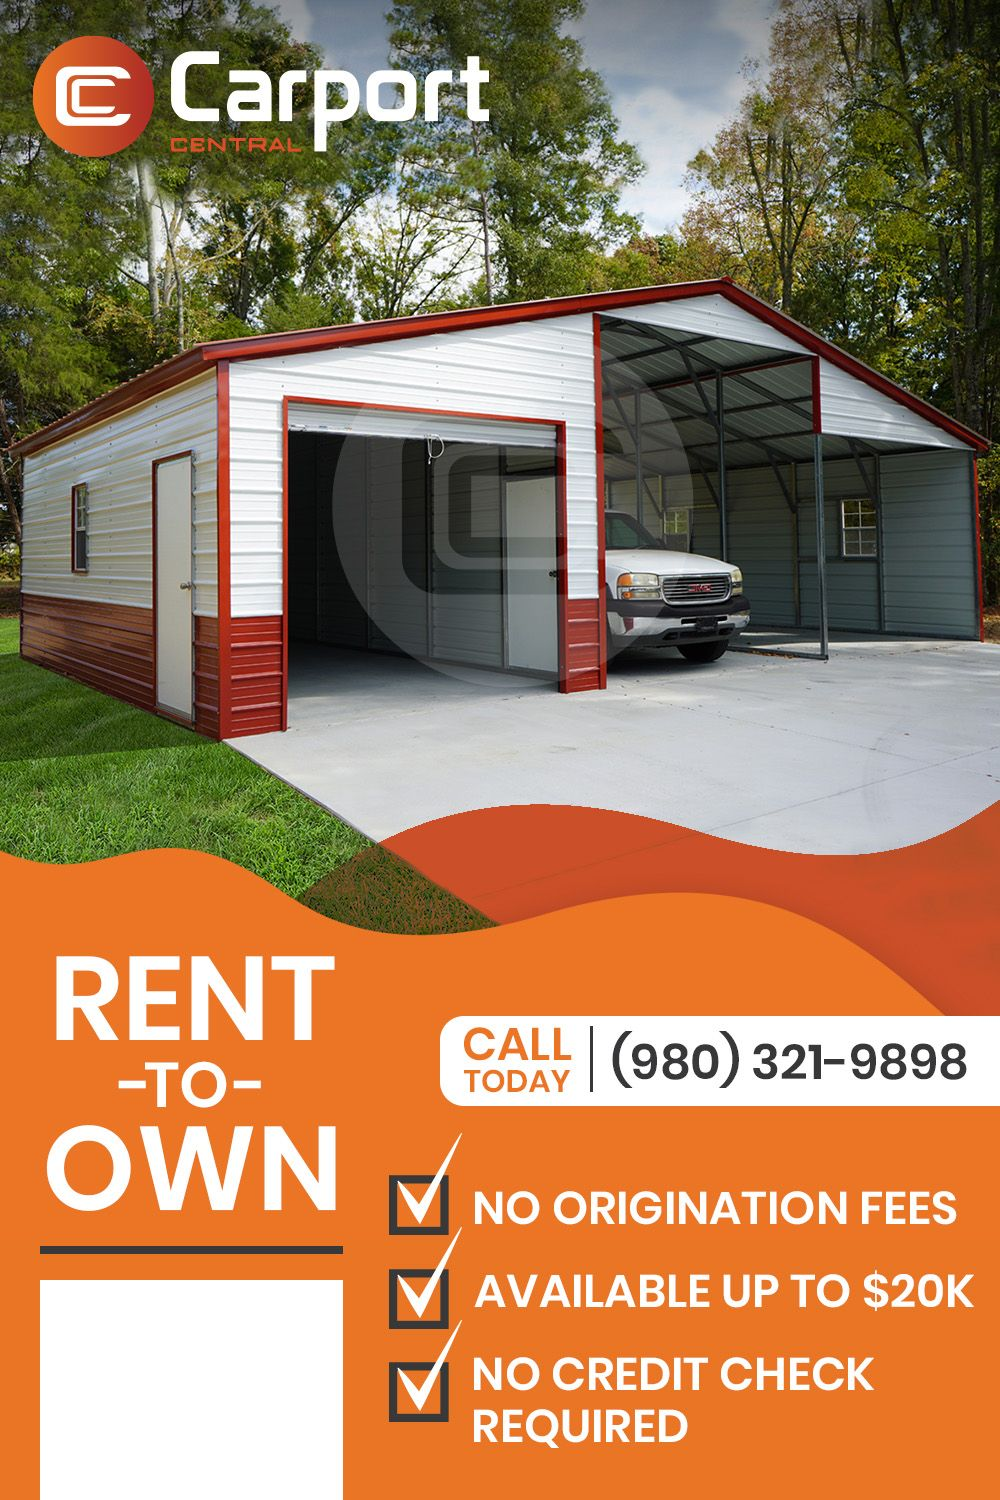 Rent to Own Metal Buildings Carport Central in 2020